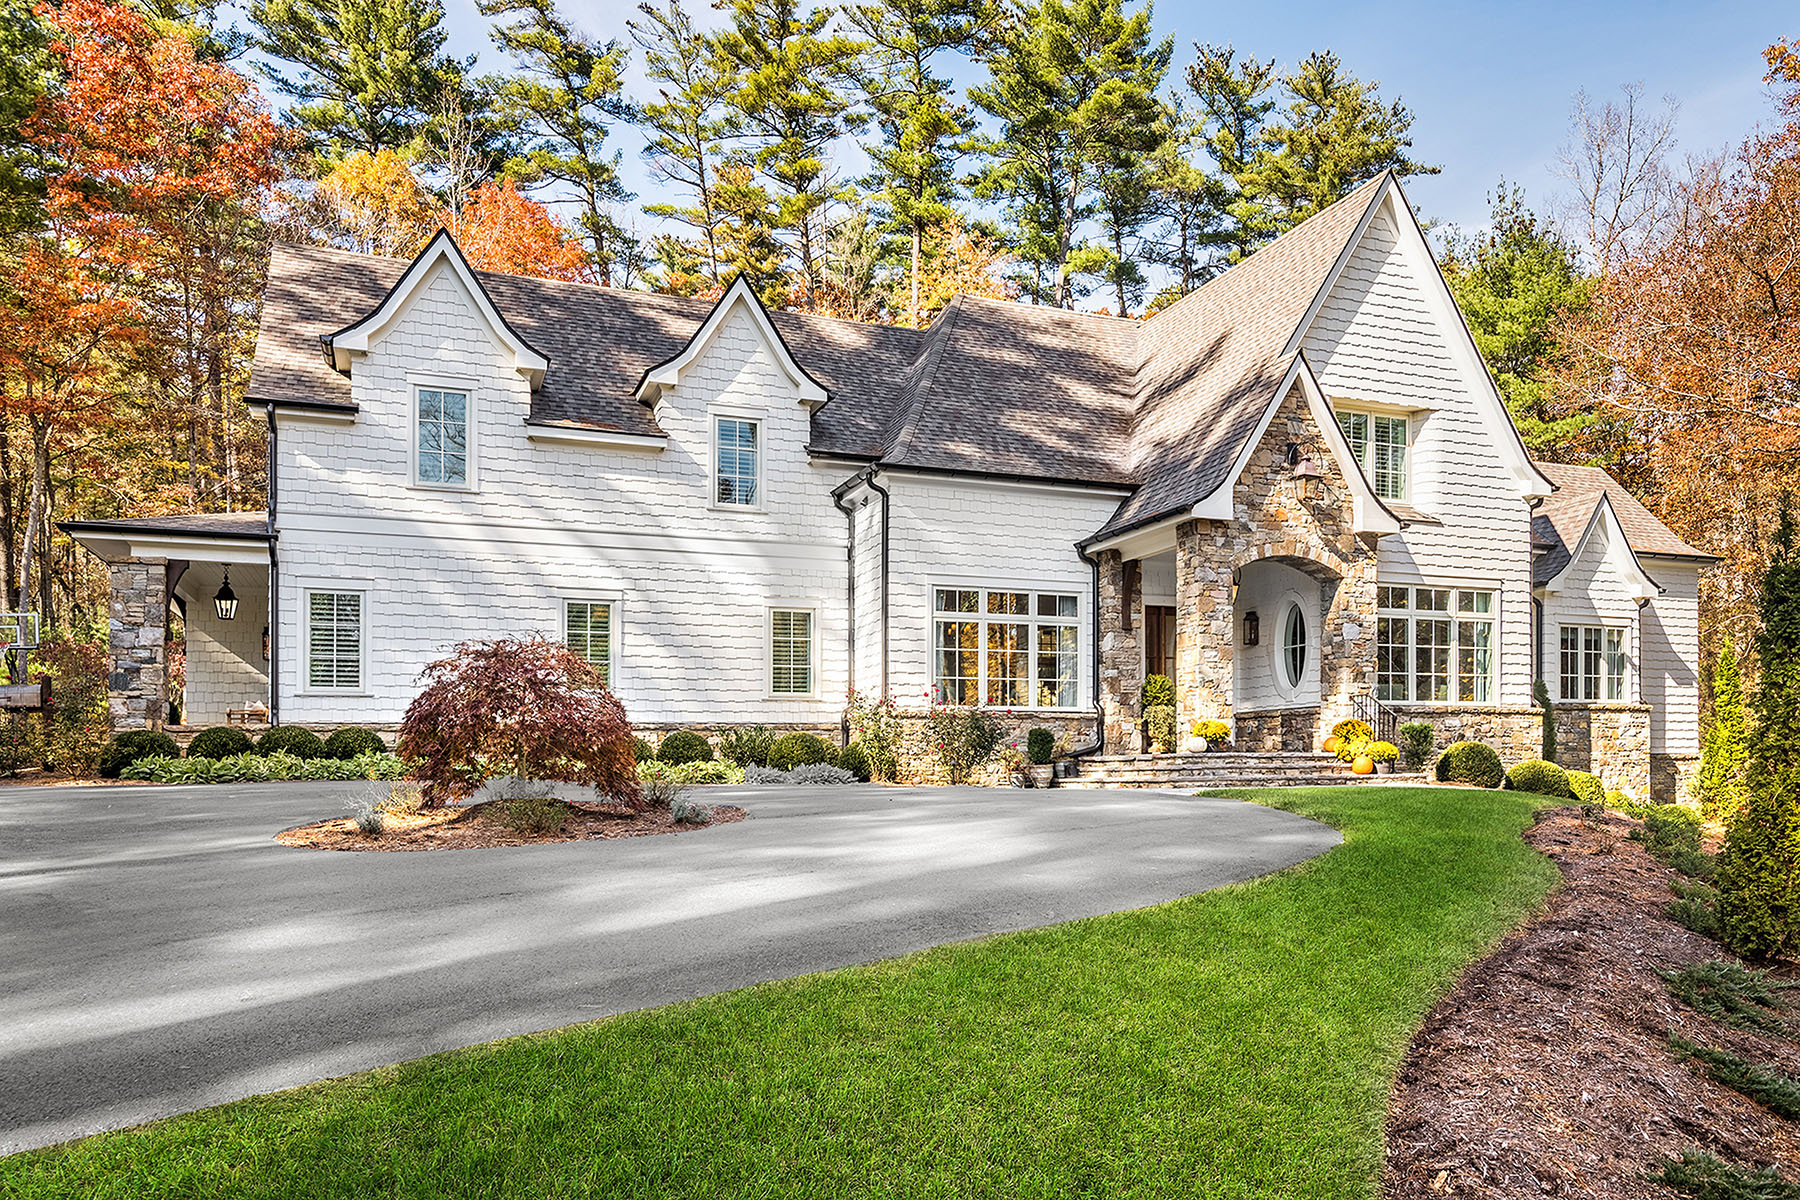 Single Family Homes for Sale at BILTMORE FOREST 57 Forest Rd Asheville, North Carolina 28803 United States